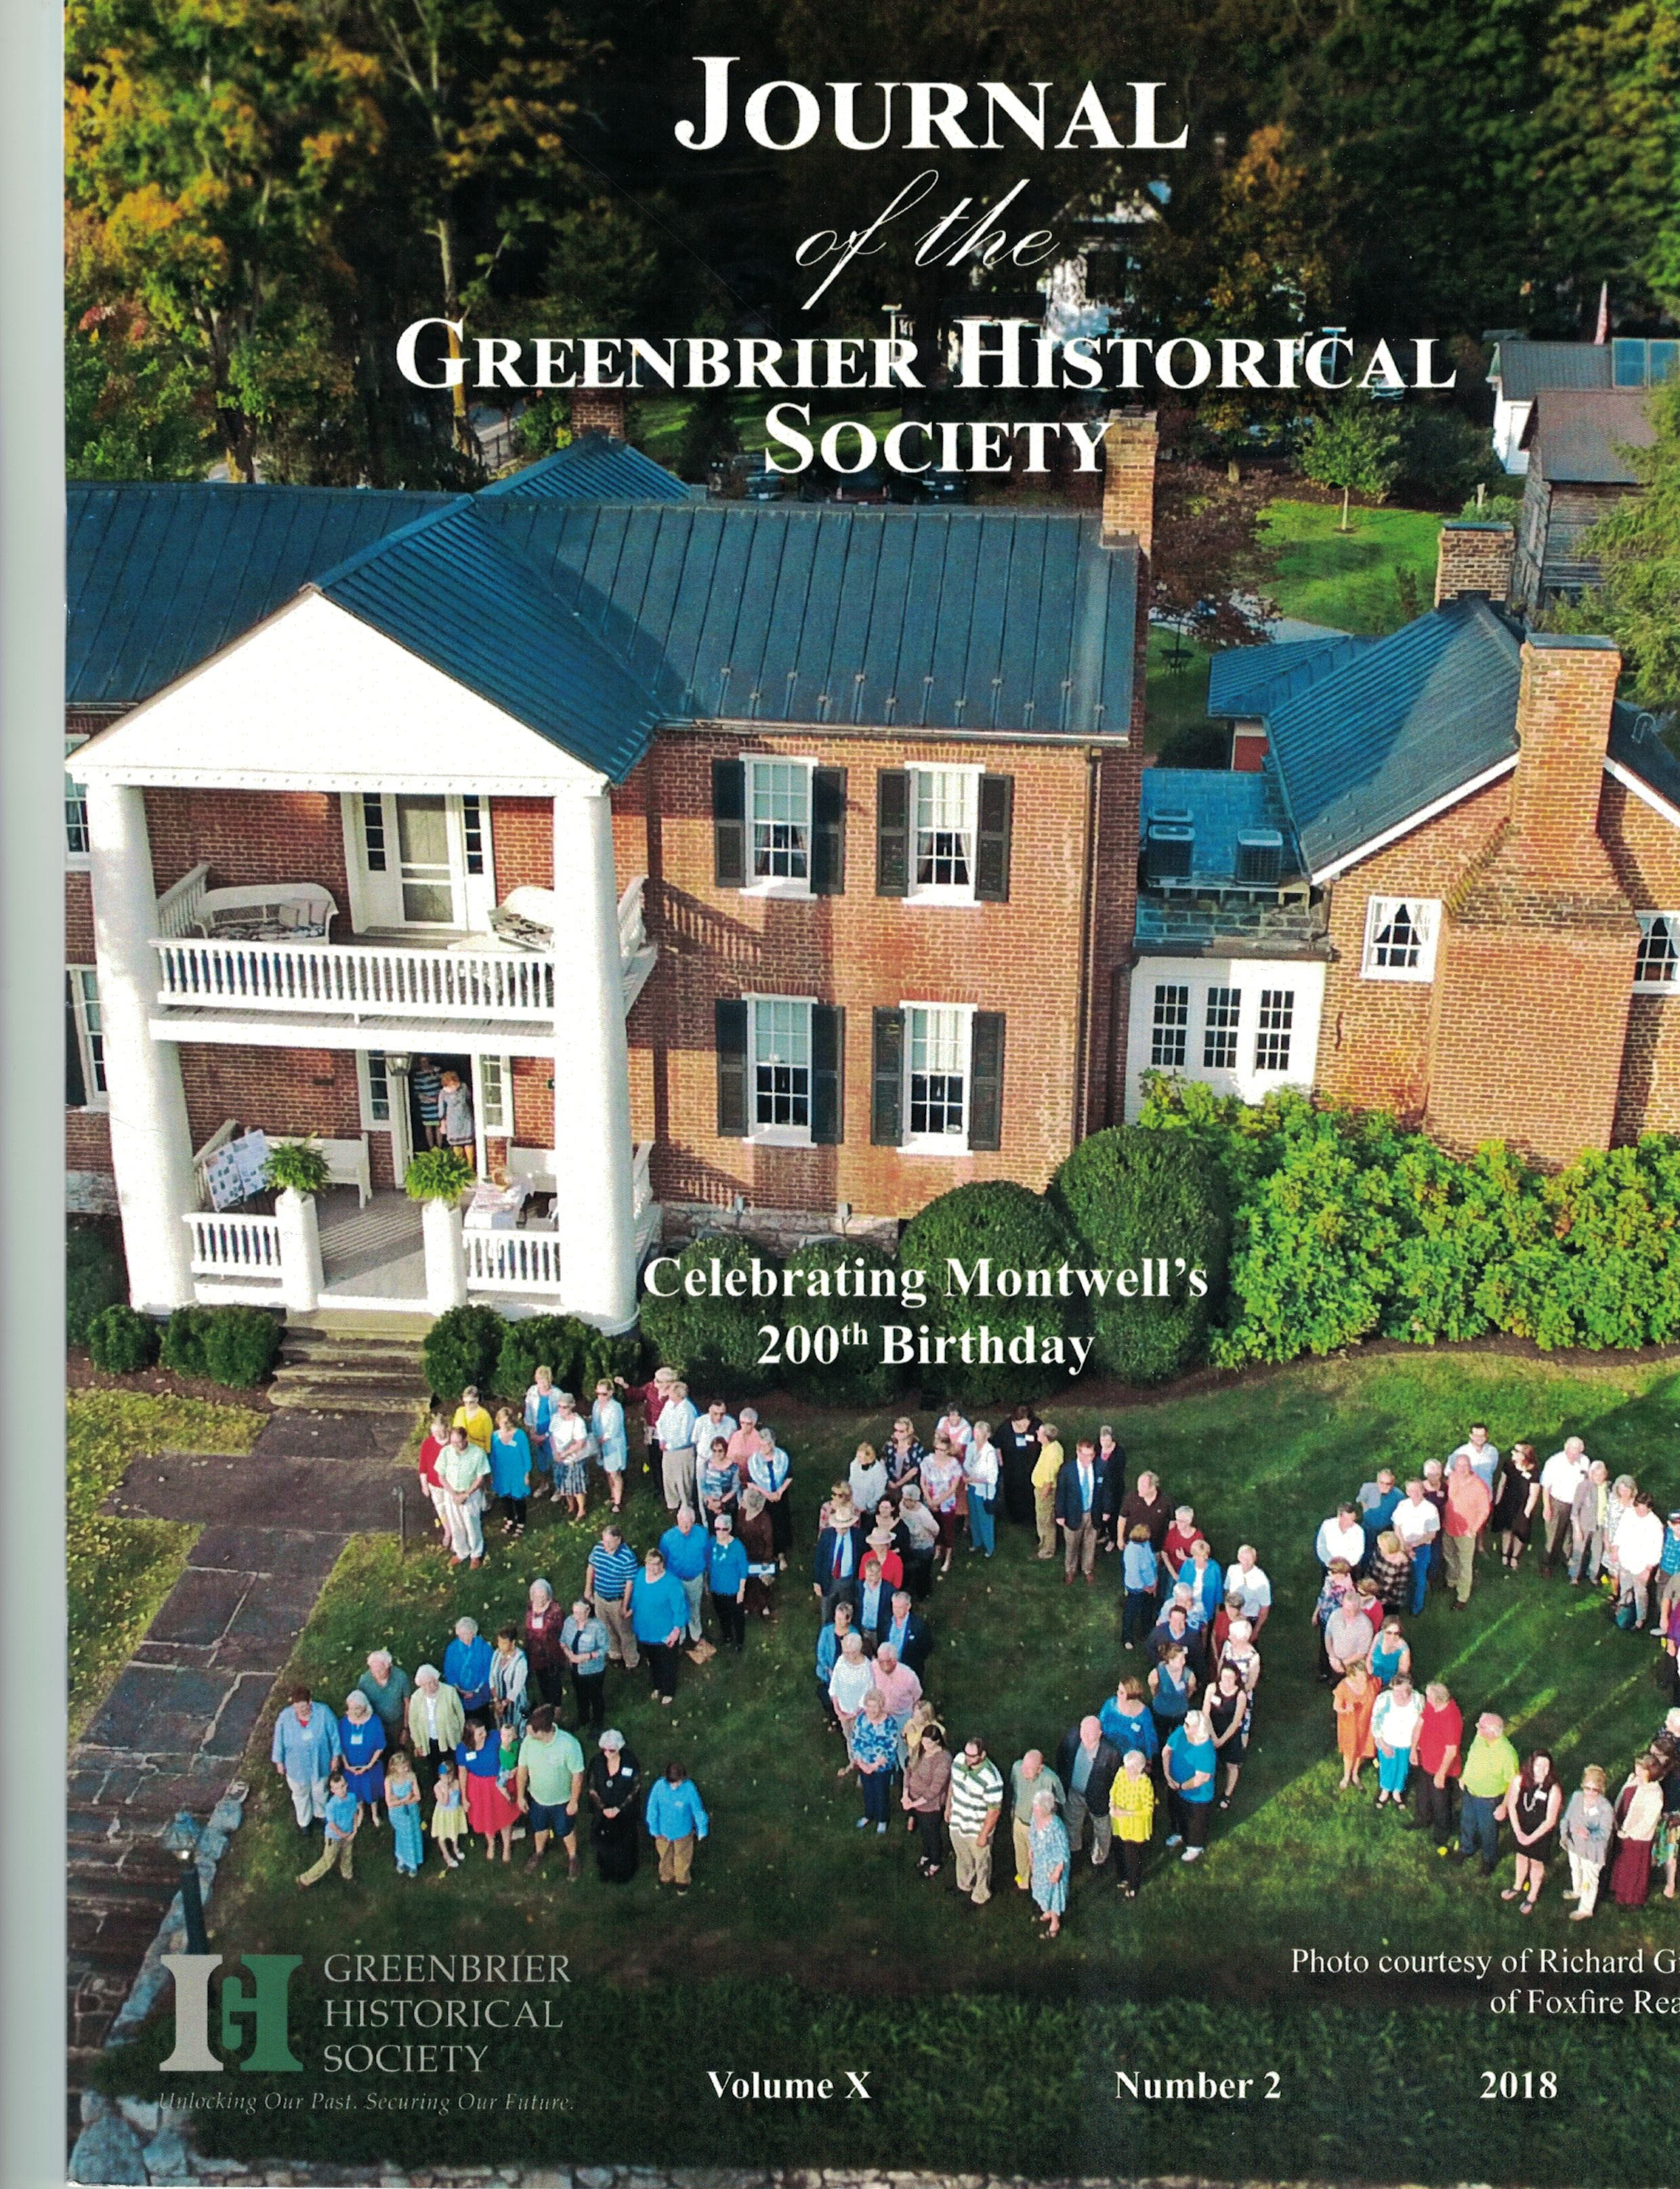 To celebrate Montwell's 200th anniversary, Mary and Paul Lindquist hosted the annual meeting of the Greenbrier Historical Society on October 4, 2018.